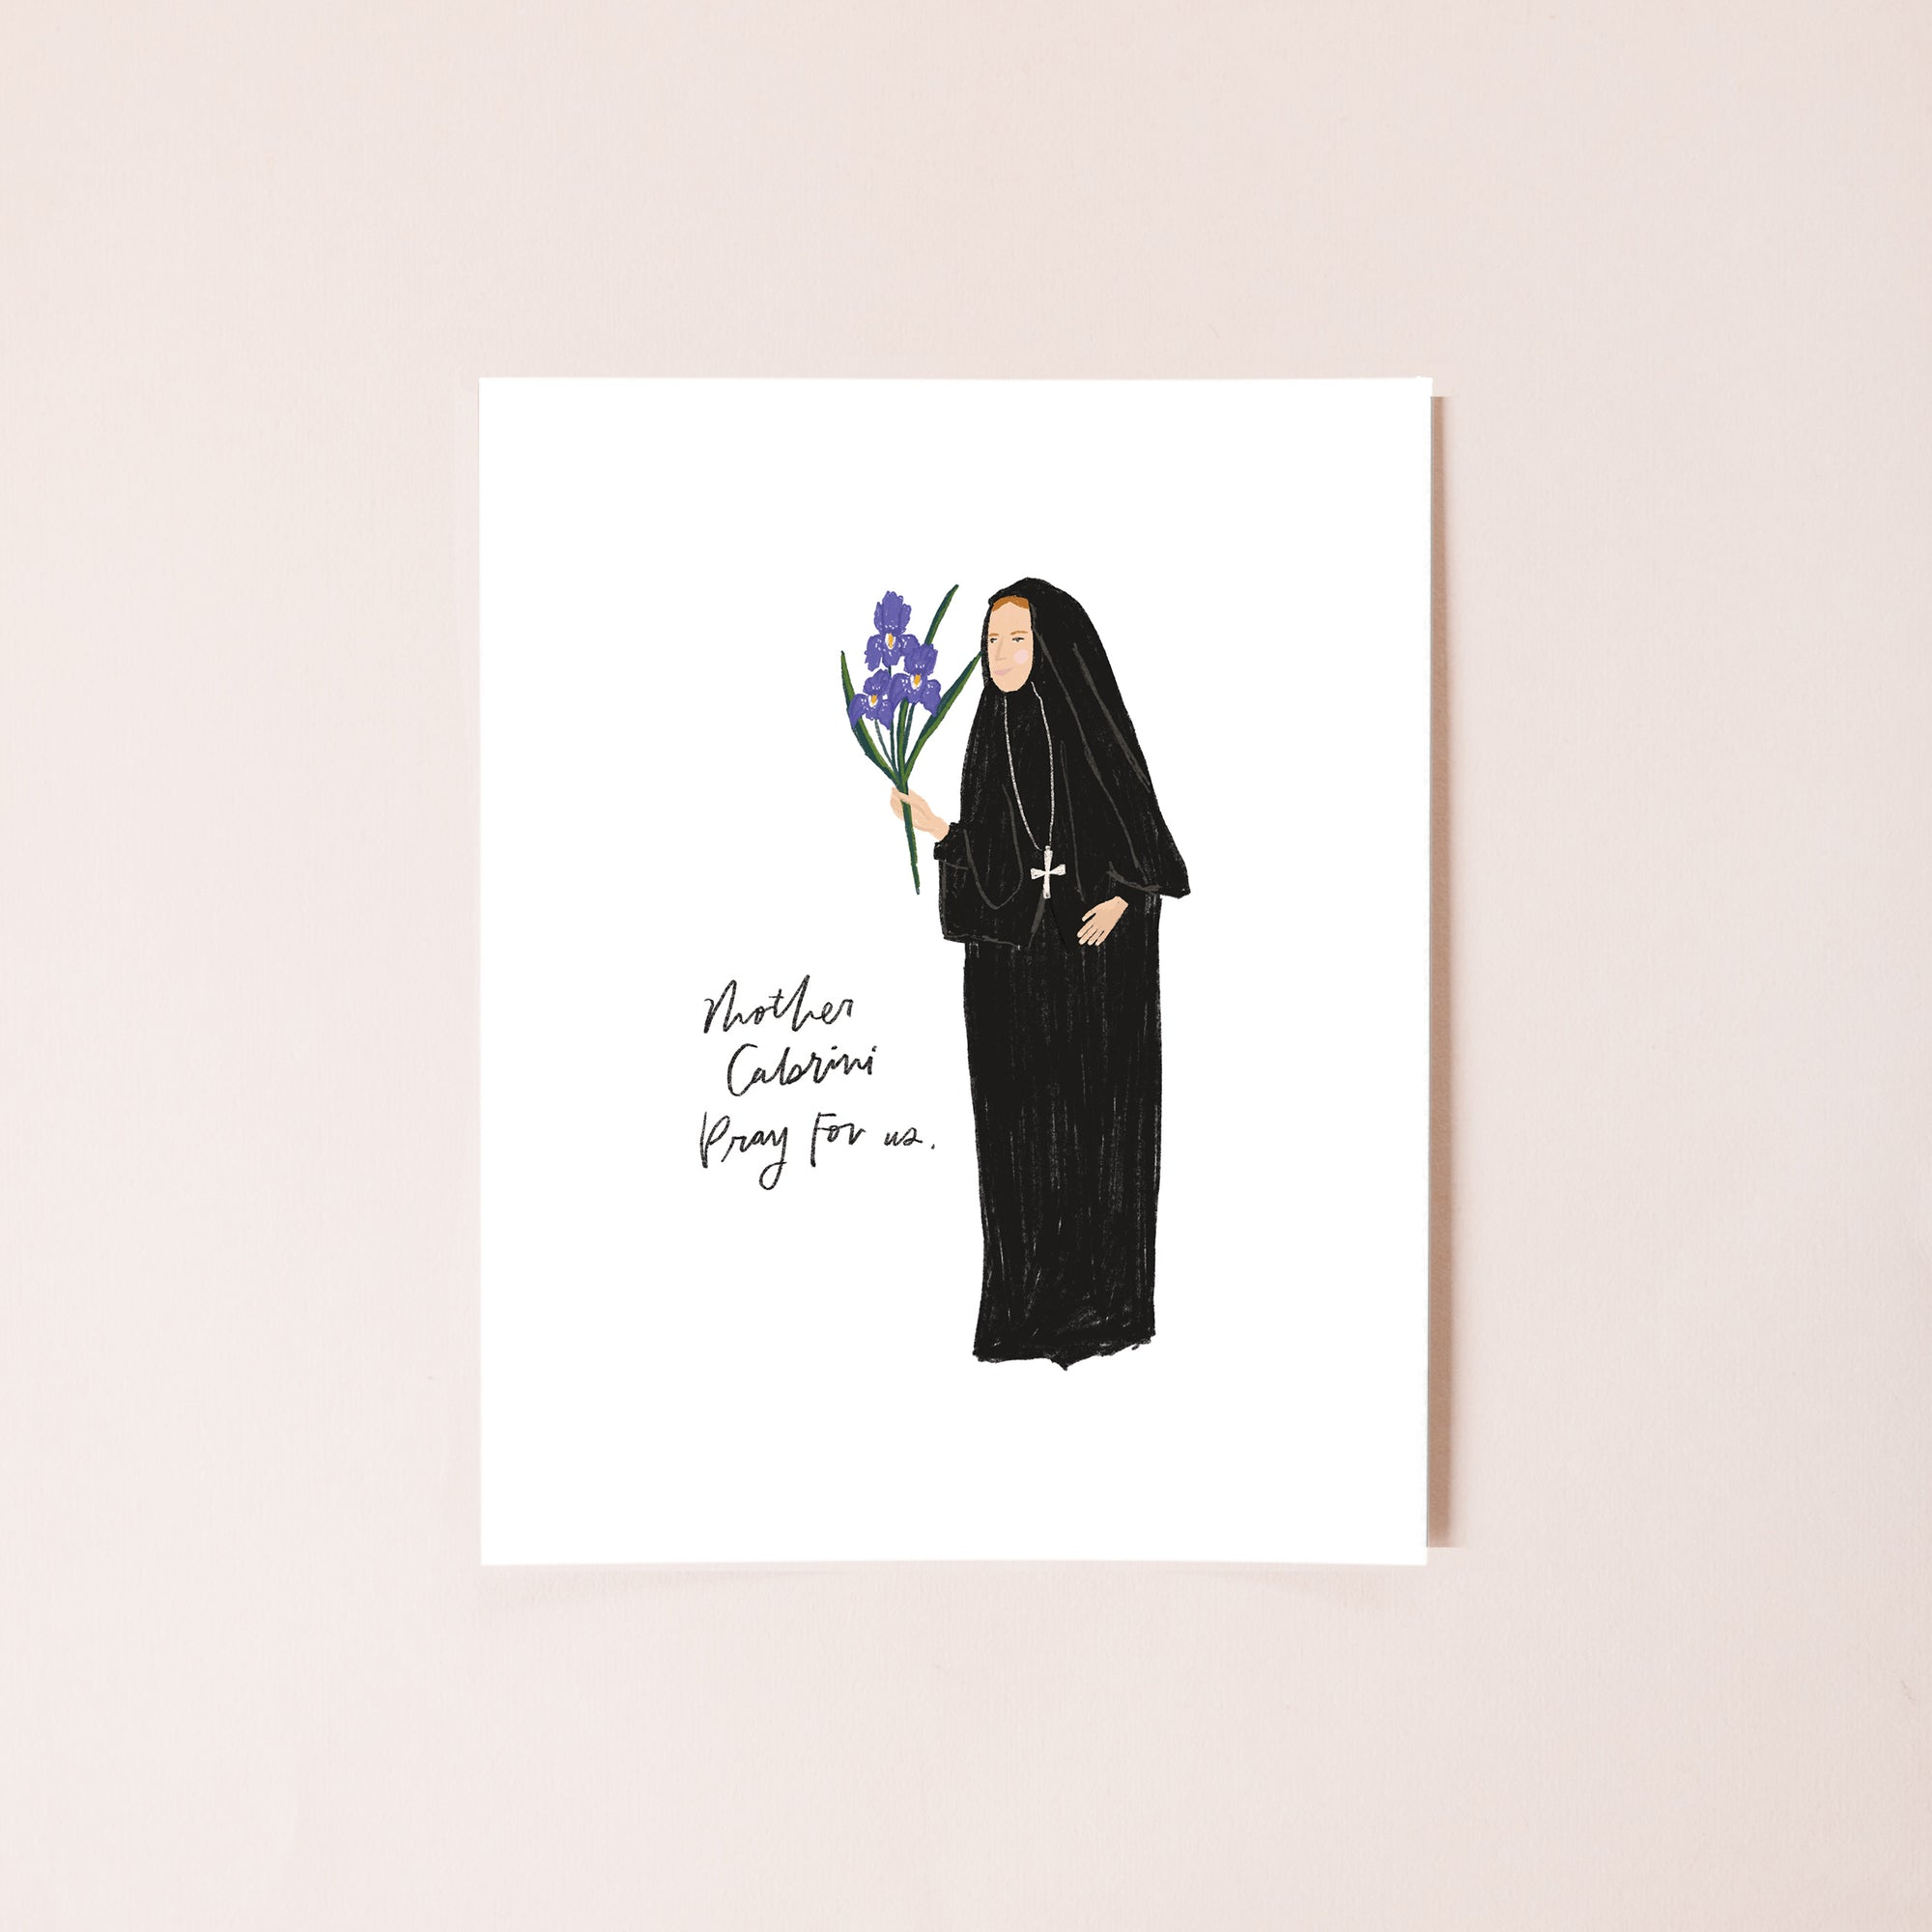 Mother Cabrini 8x10 Digital Download